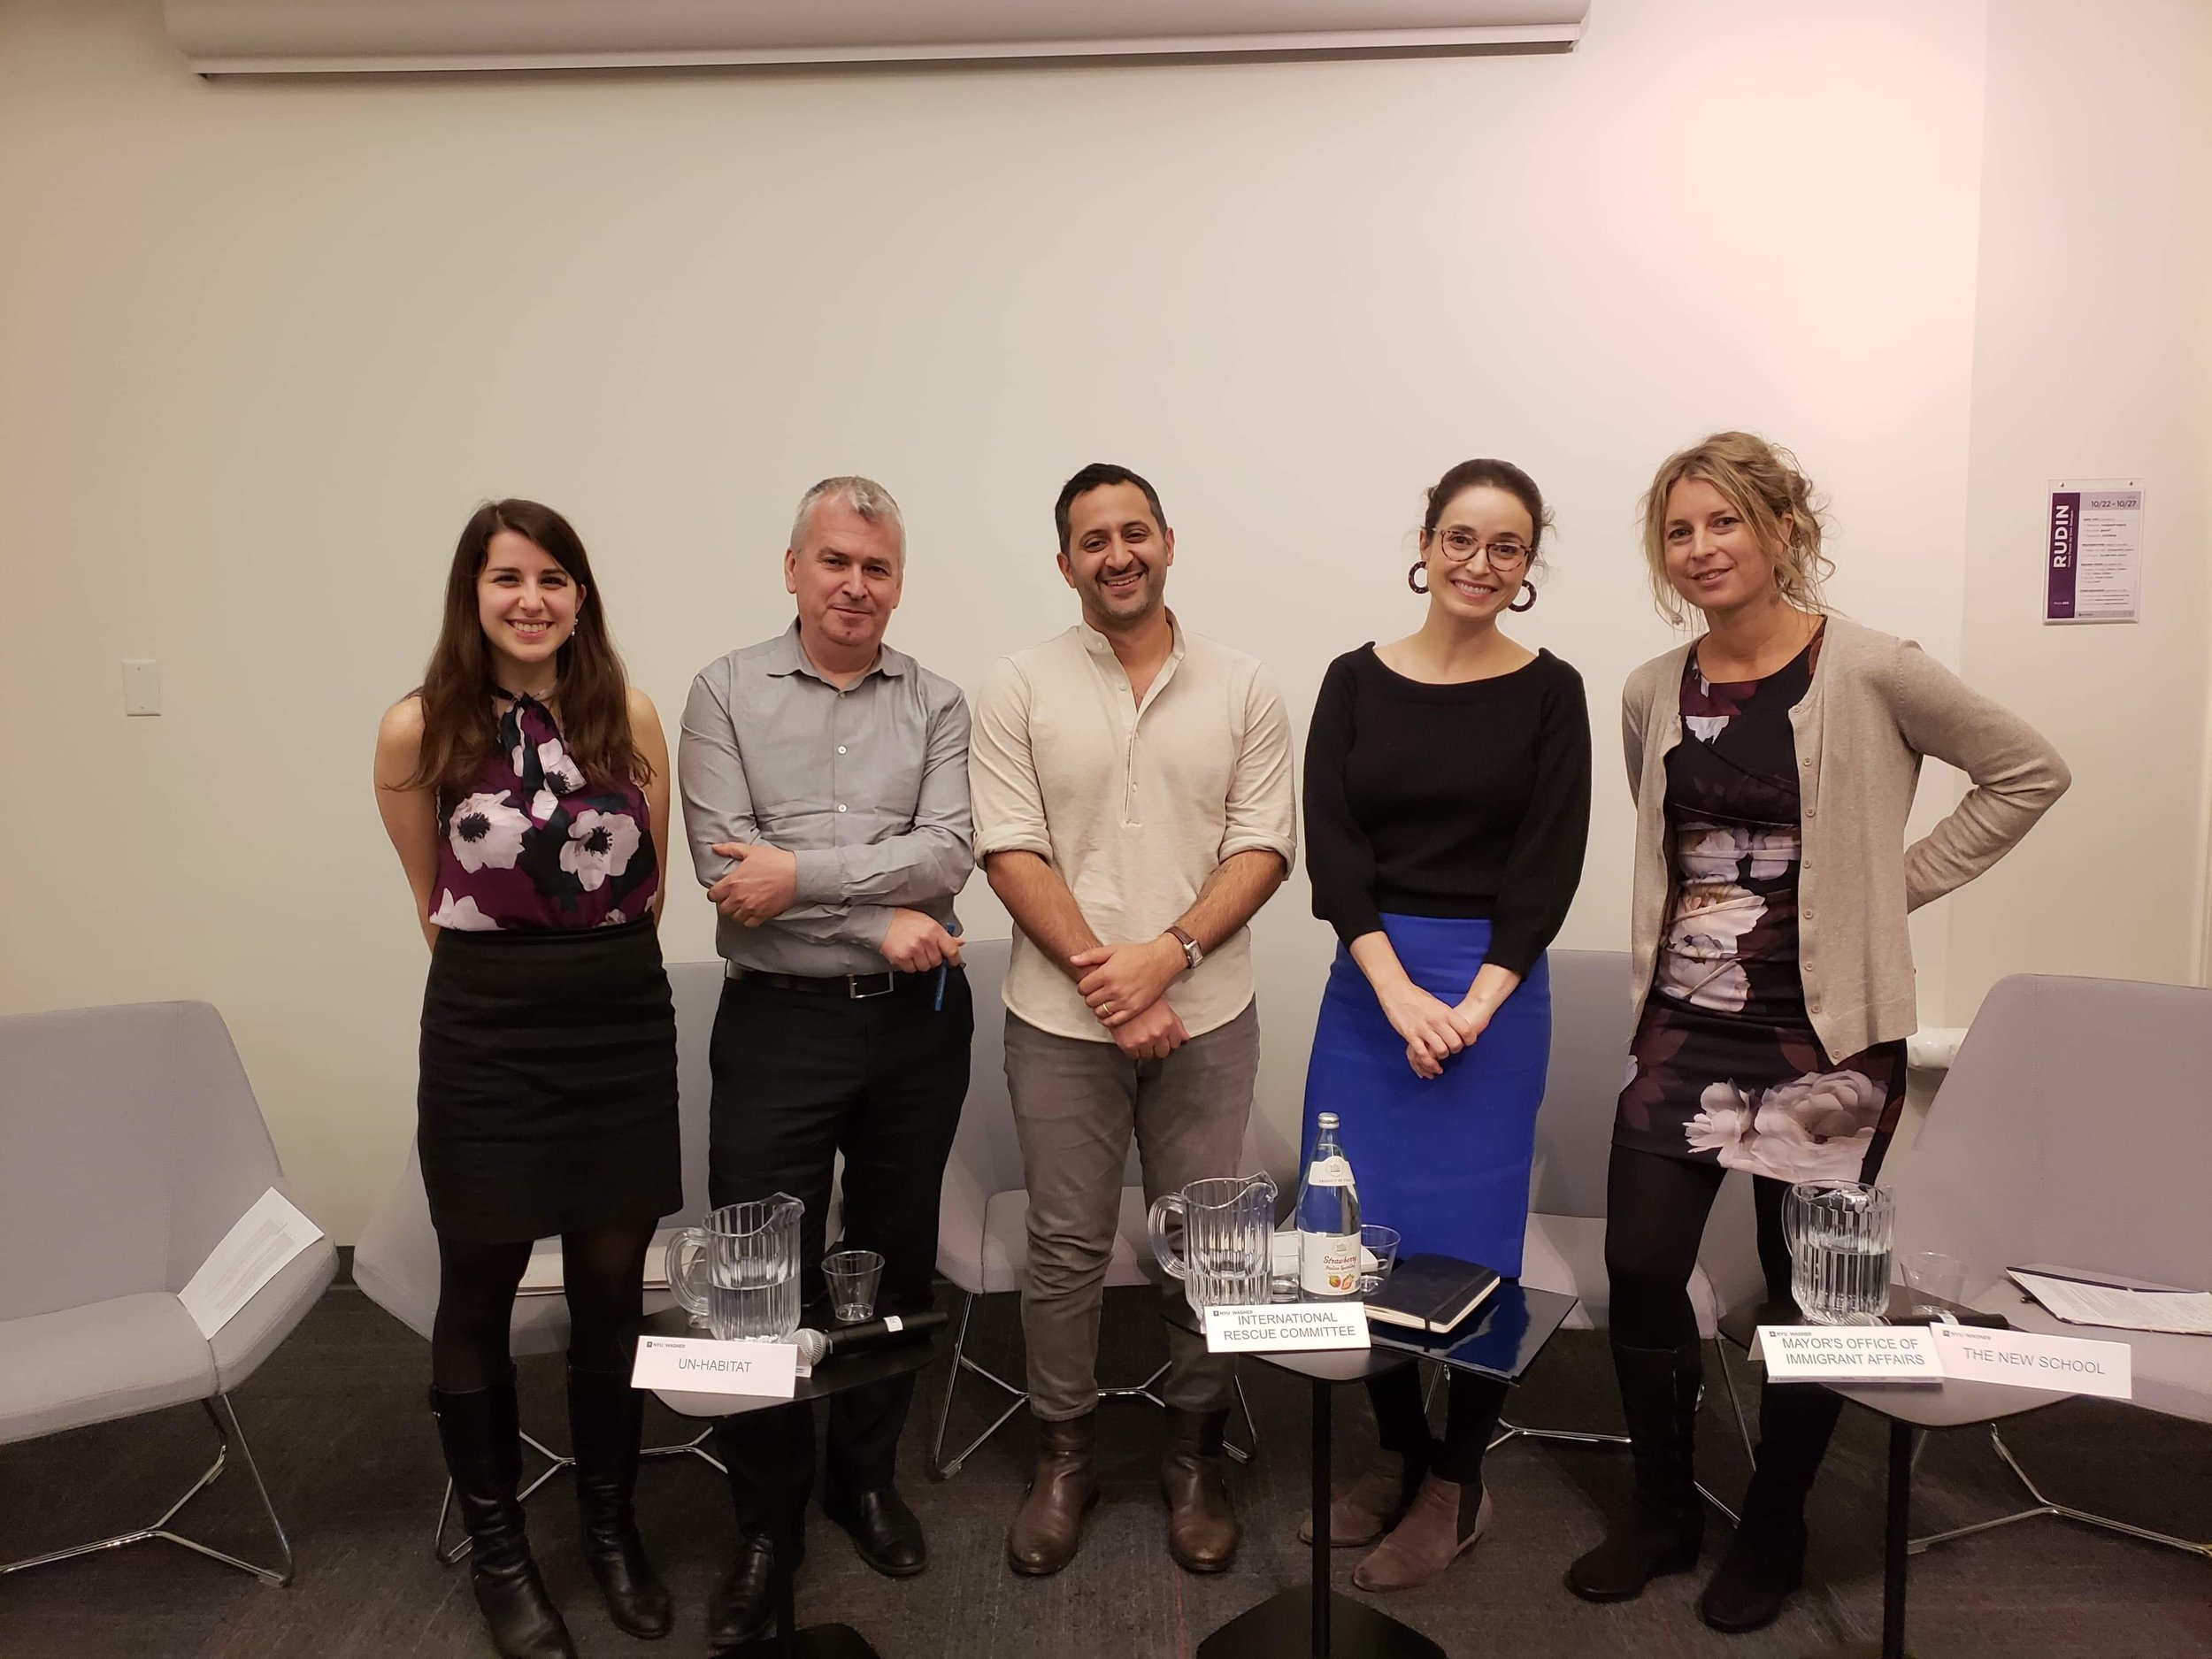 'Building New homes: urban action to address migration' - Panel at NYU Wagner School, October 25th, 2018